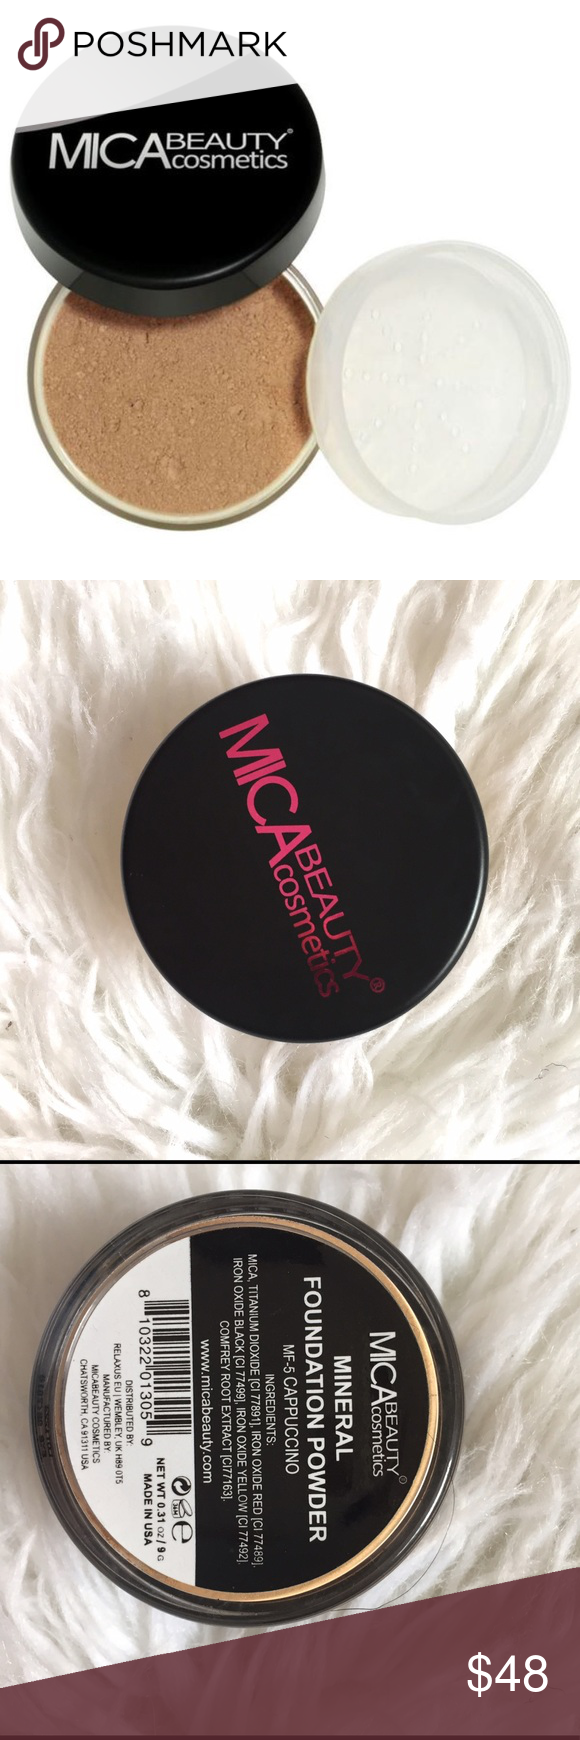 Mineral Foundation Powder Retails for 64.95. Brand new